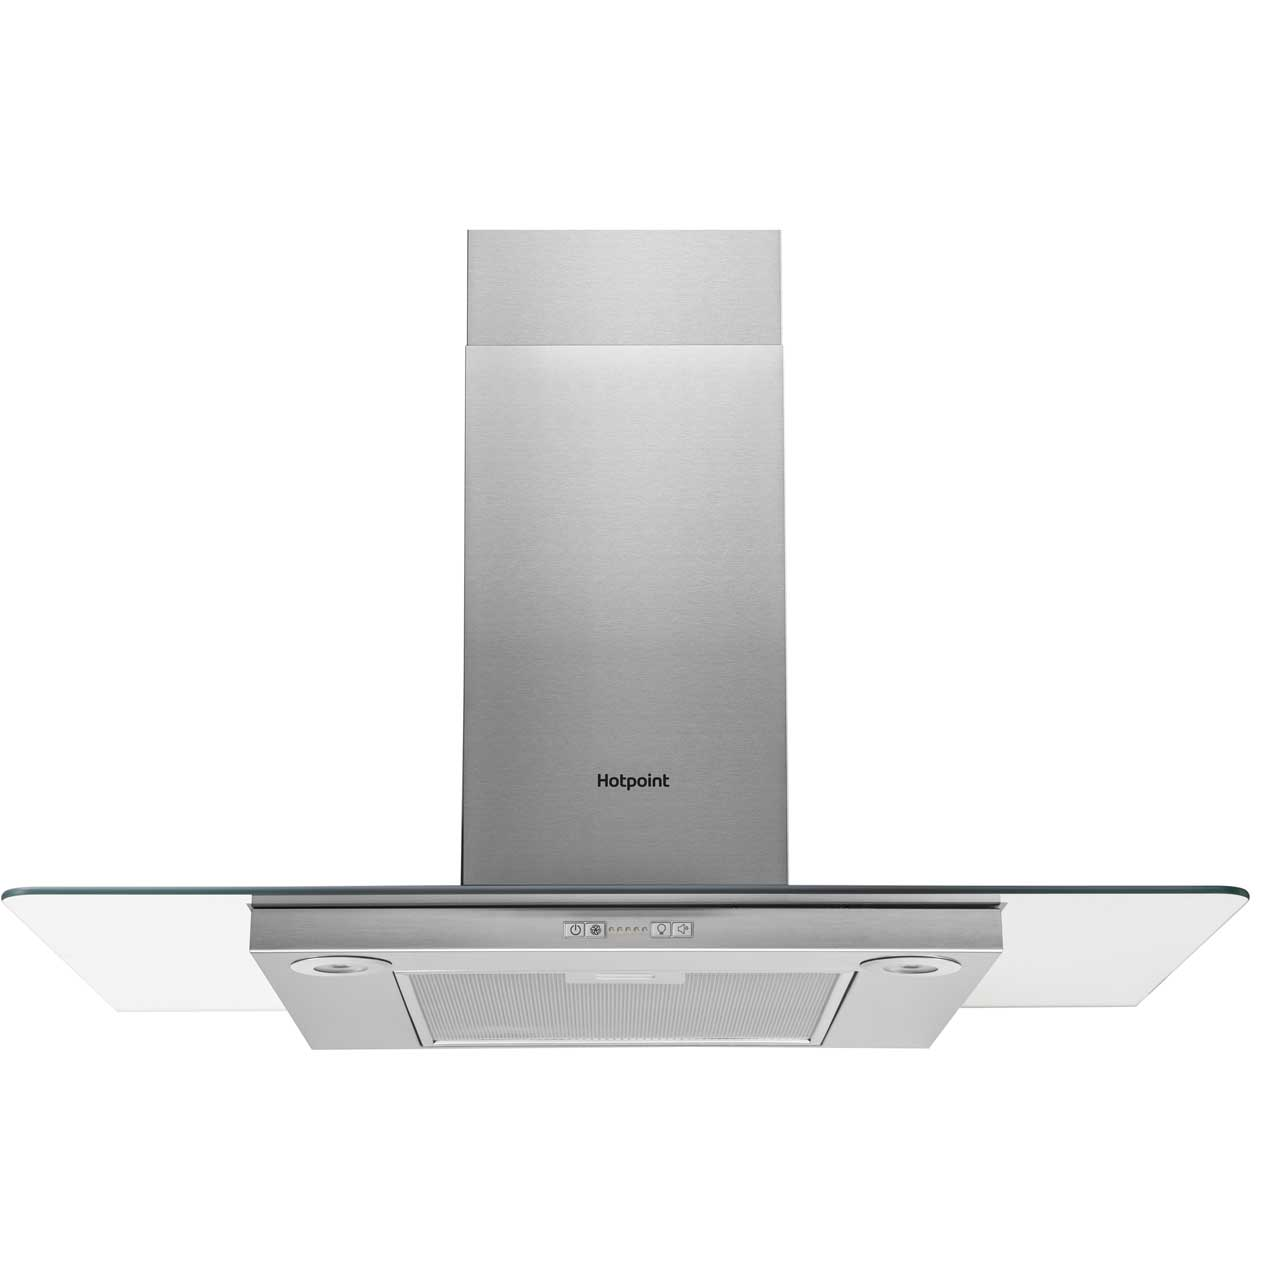 Hotpoint PHFG95FABX Integrated Cooker Hood in Stainless Steel